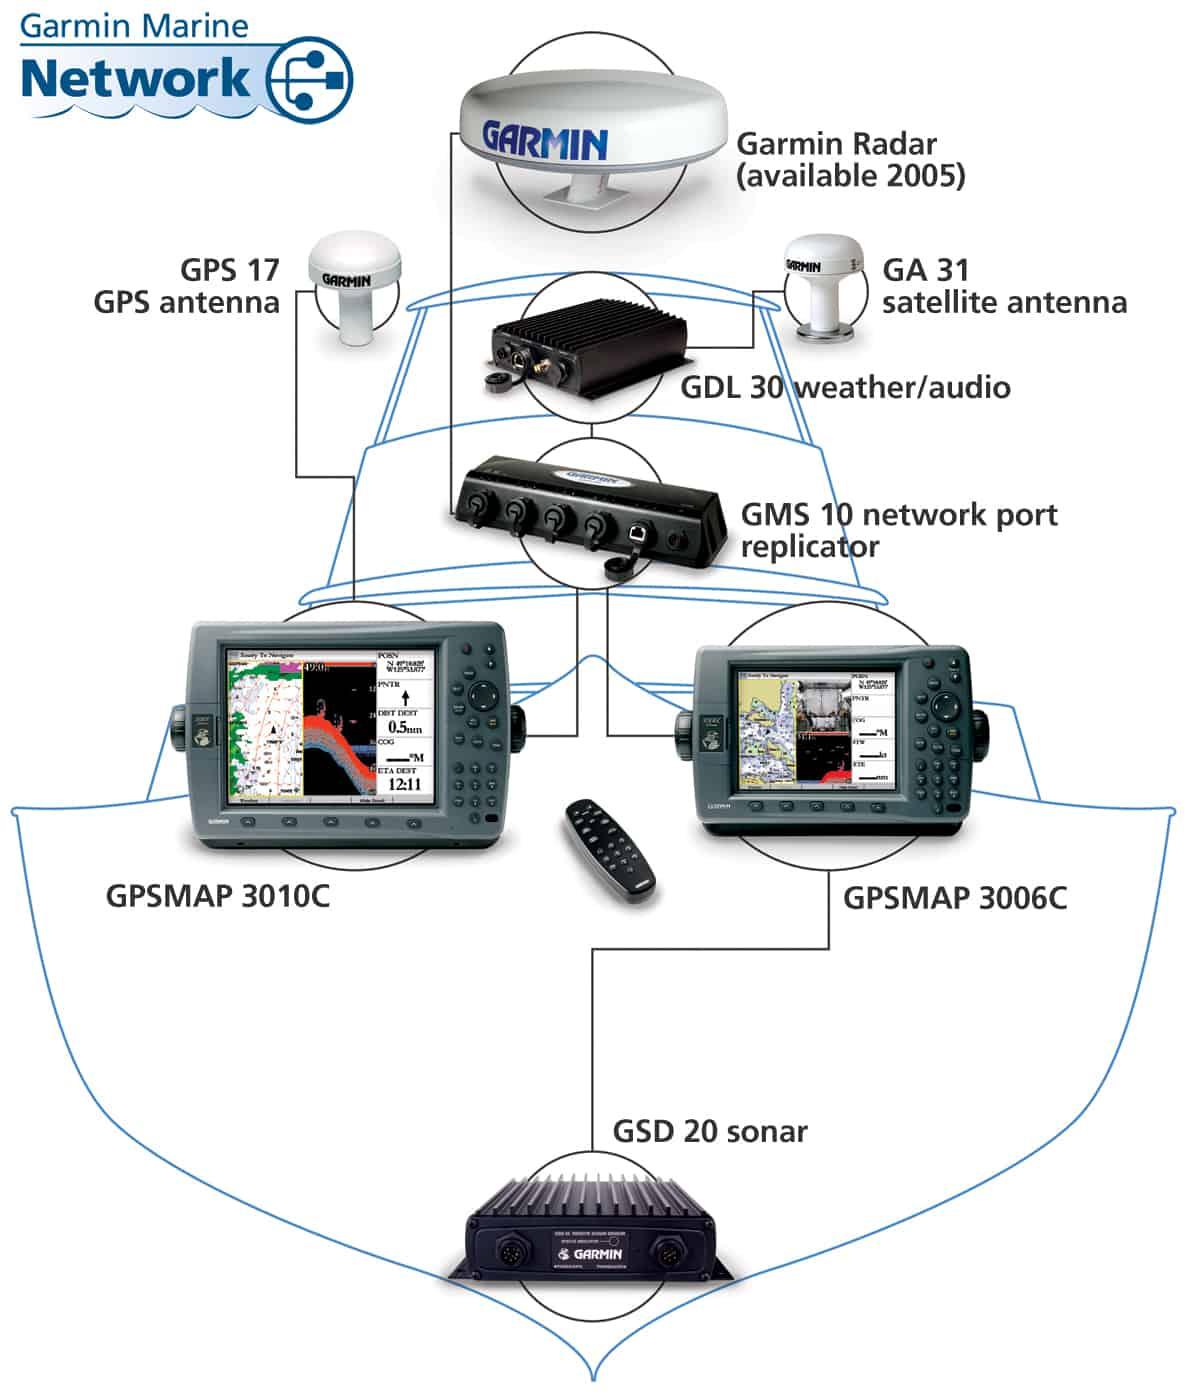 garmin wiring diagram 2005 honda accord v6 3210 review  specs features new used